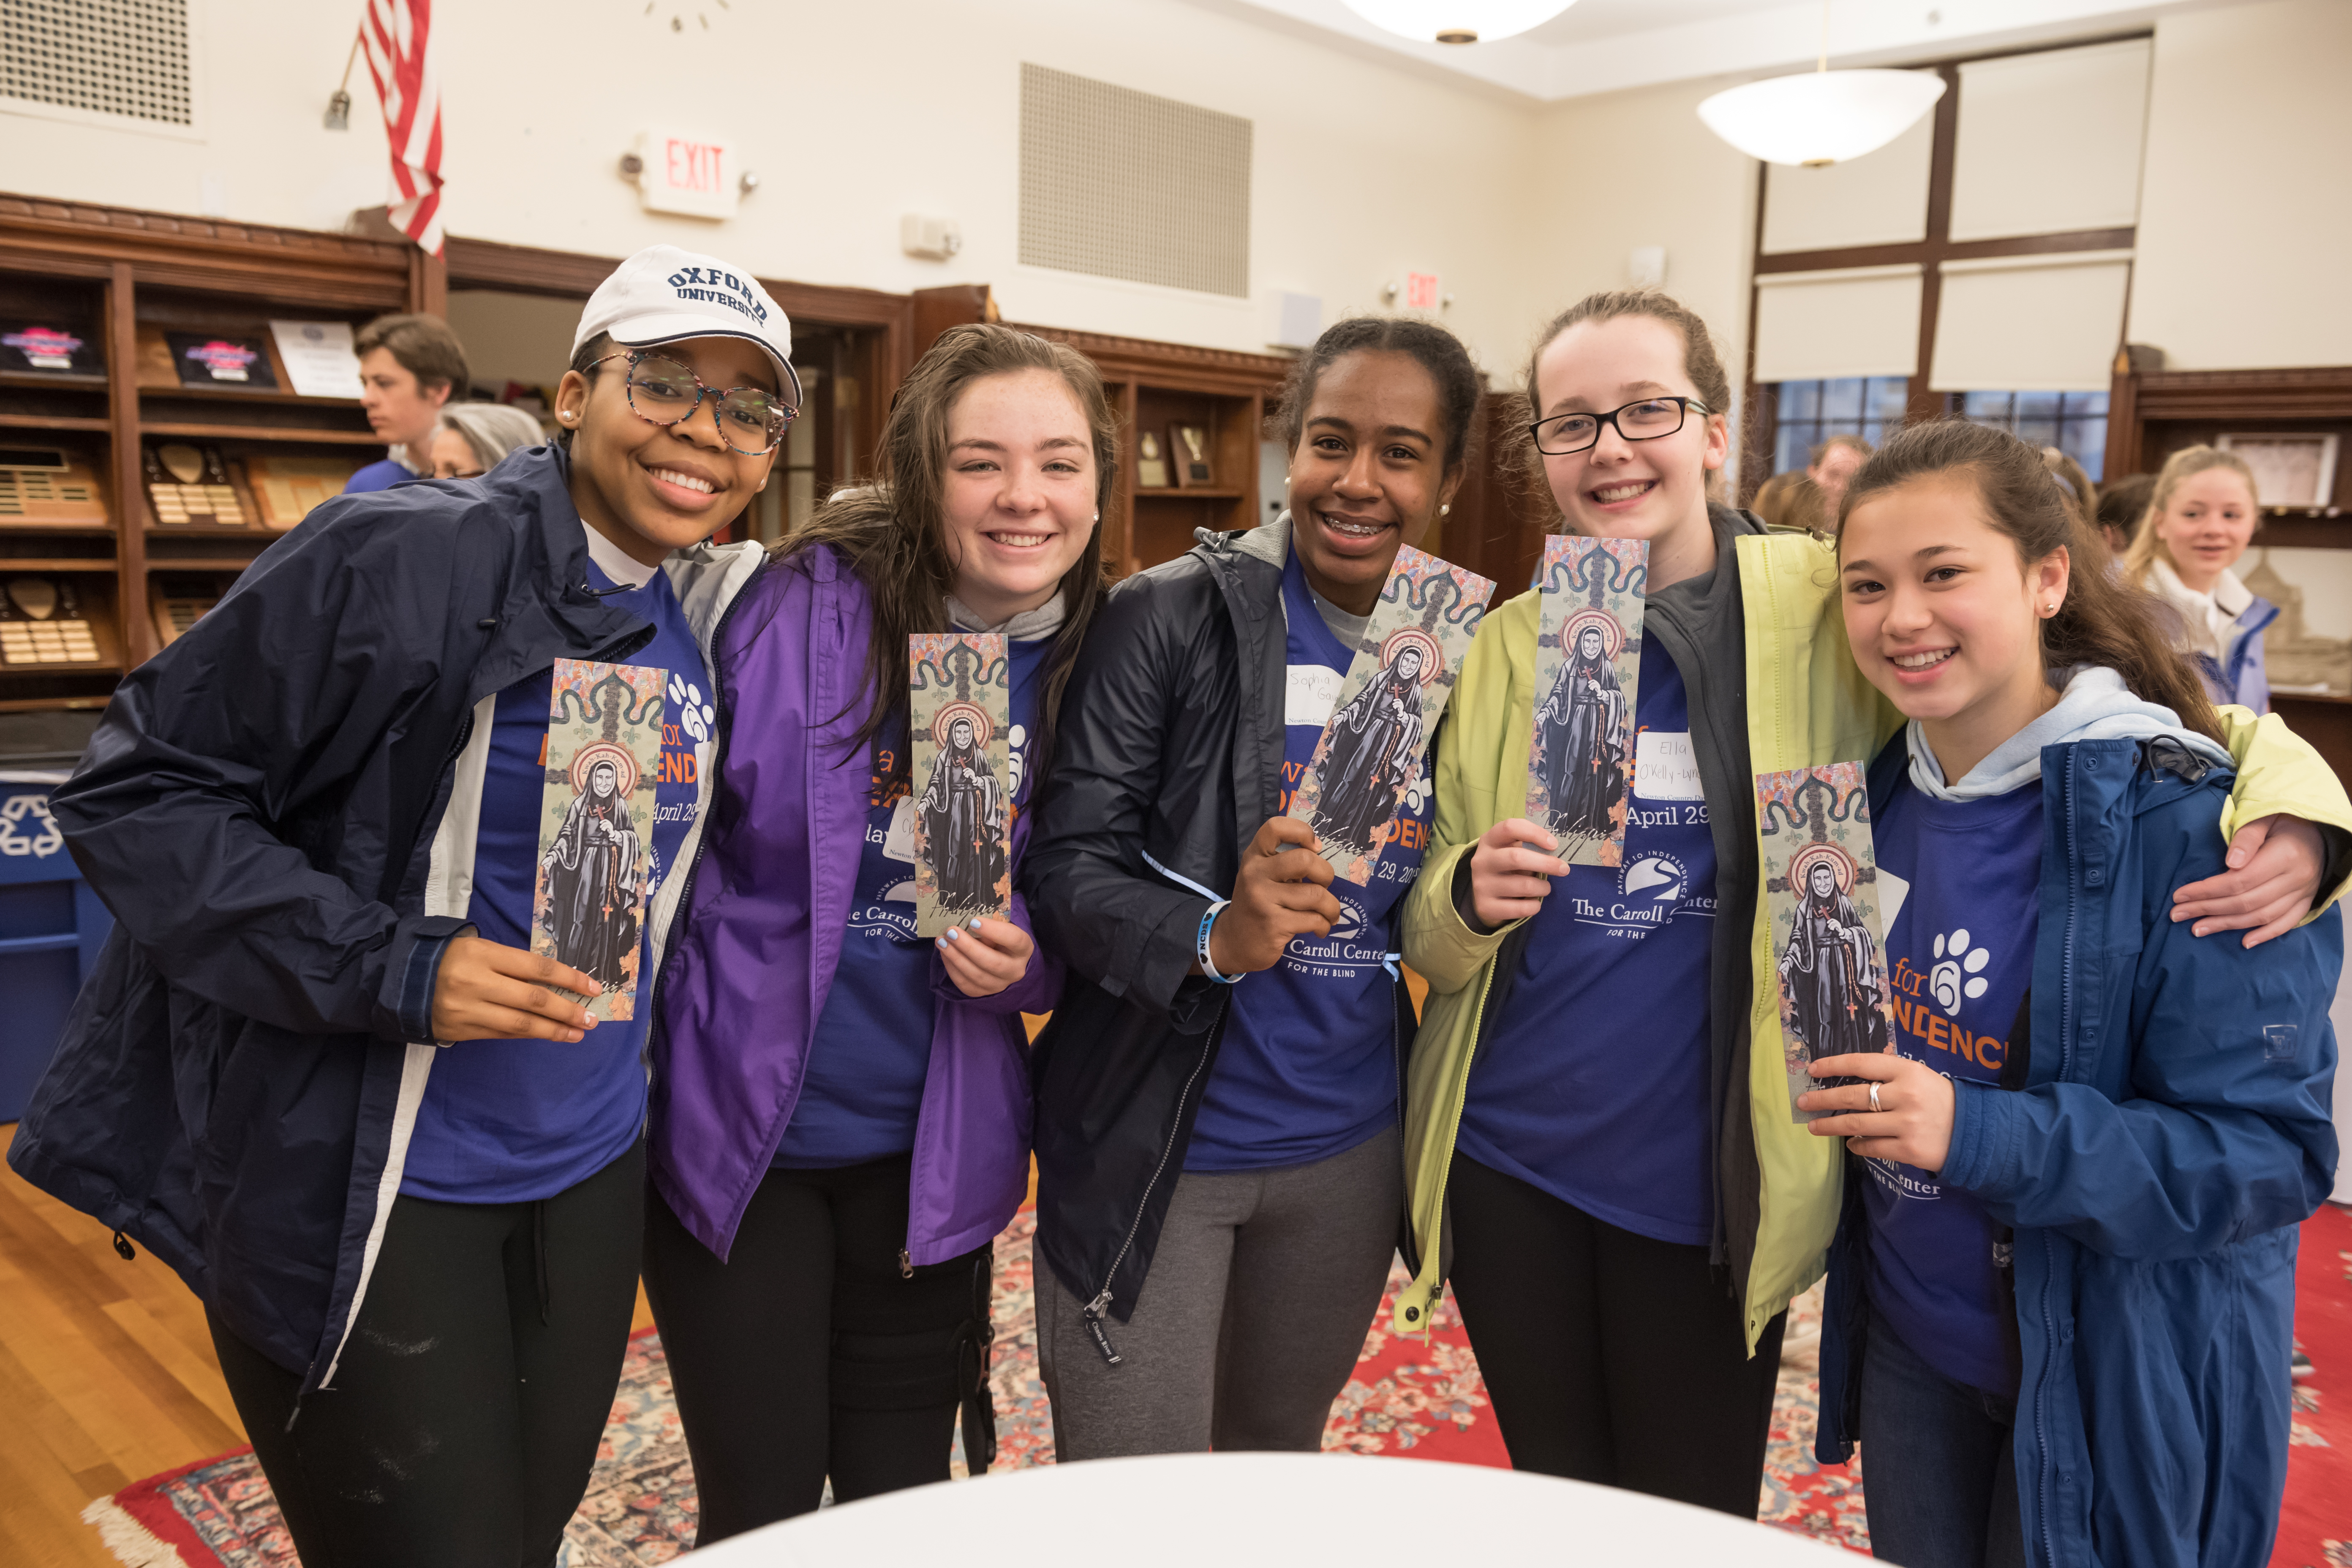 NewtonSERVES: A Day of Service to Honor St. Rose Philippine Duchesne